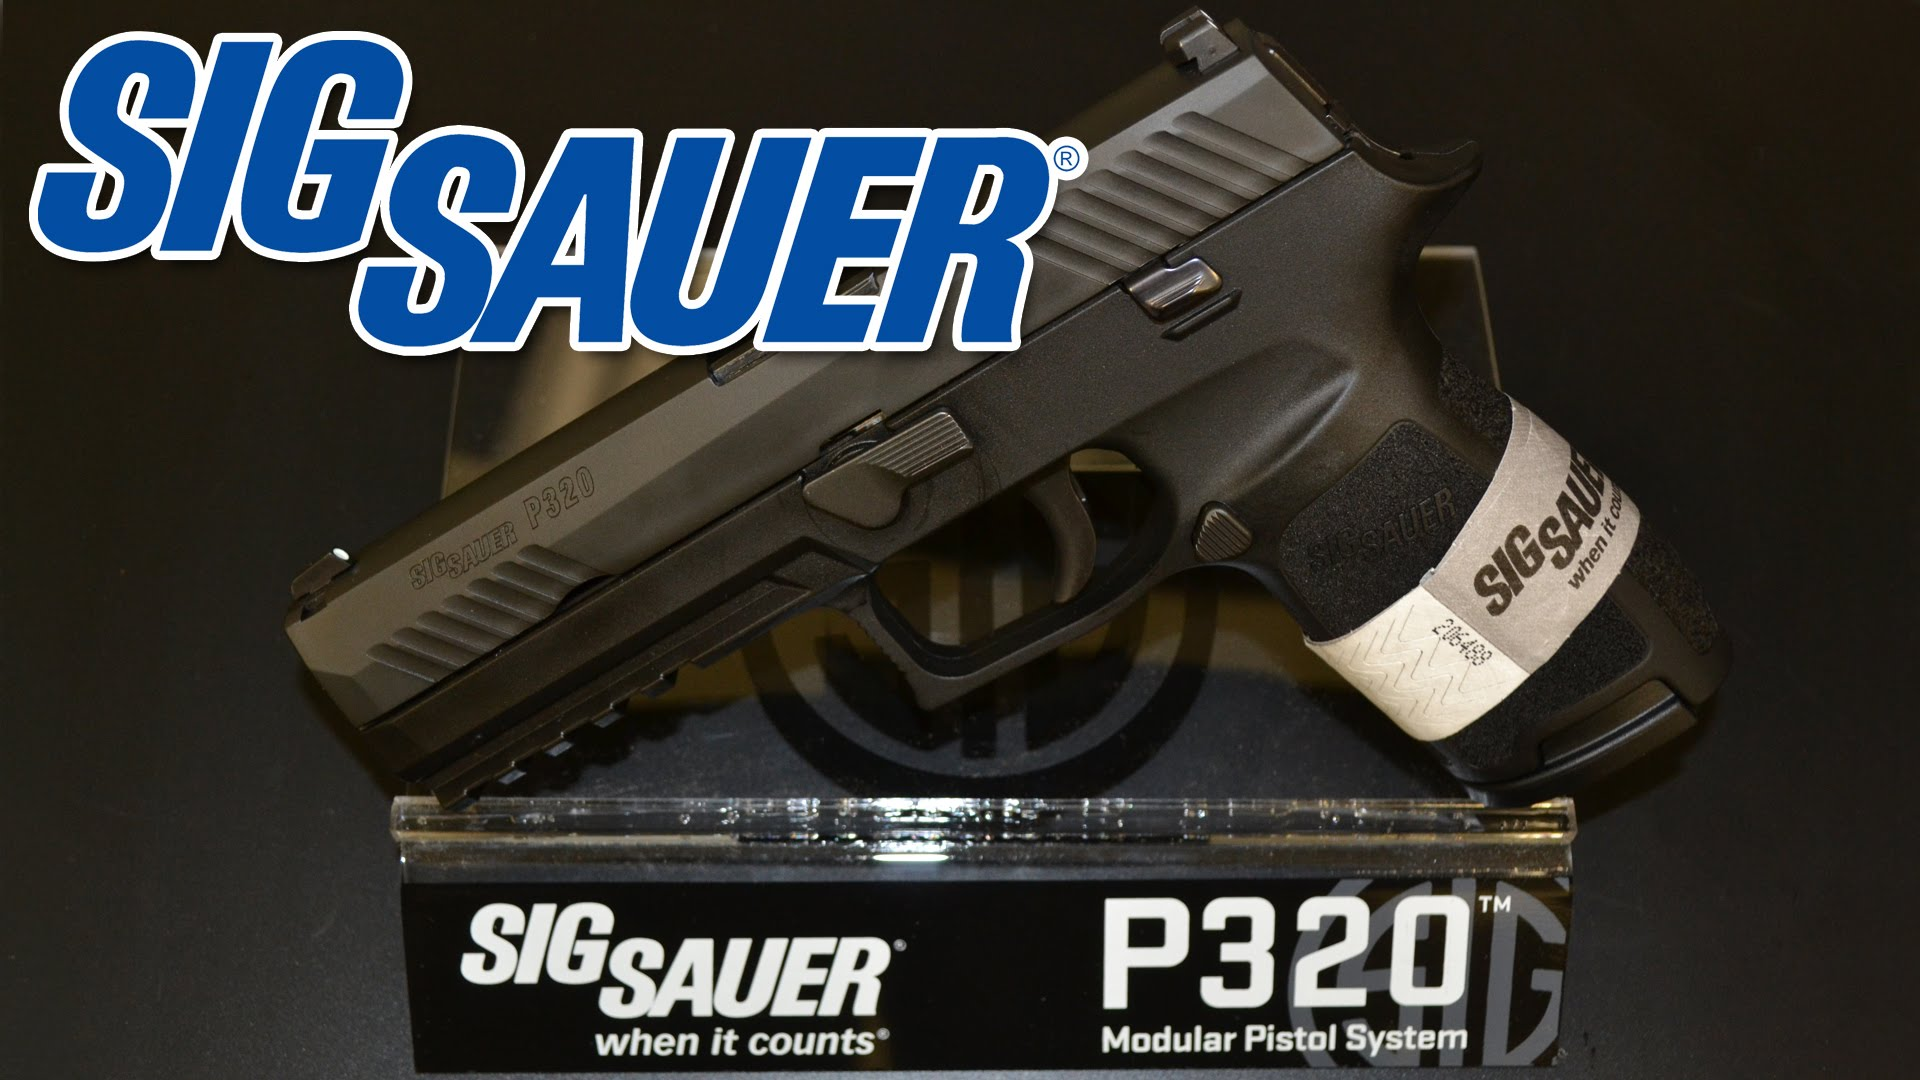 Sig Sauer Pistol Wallpapers and Background Images   stmednet 1920x1080